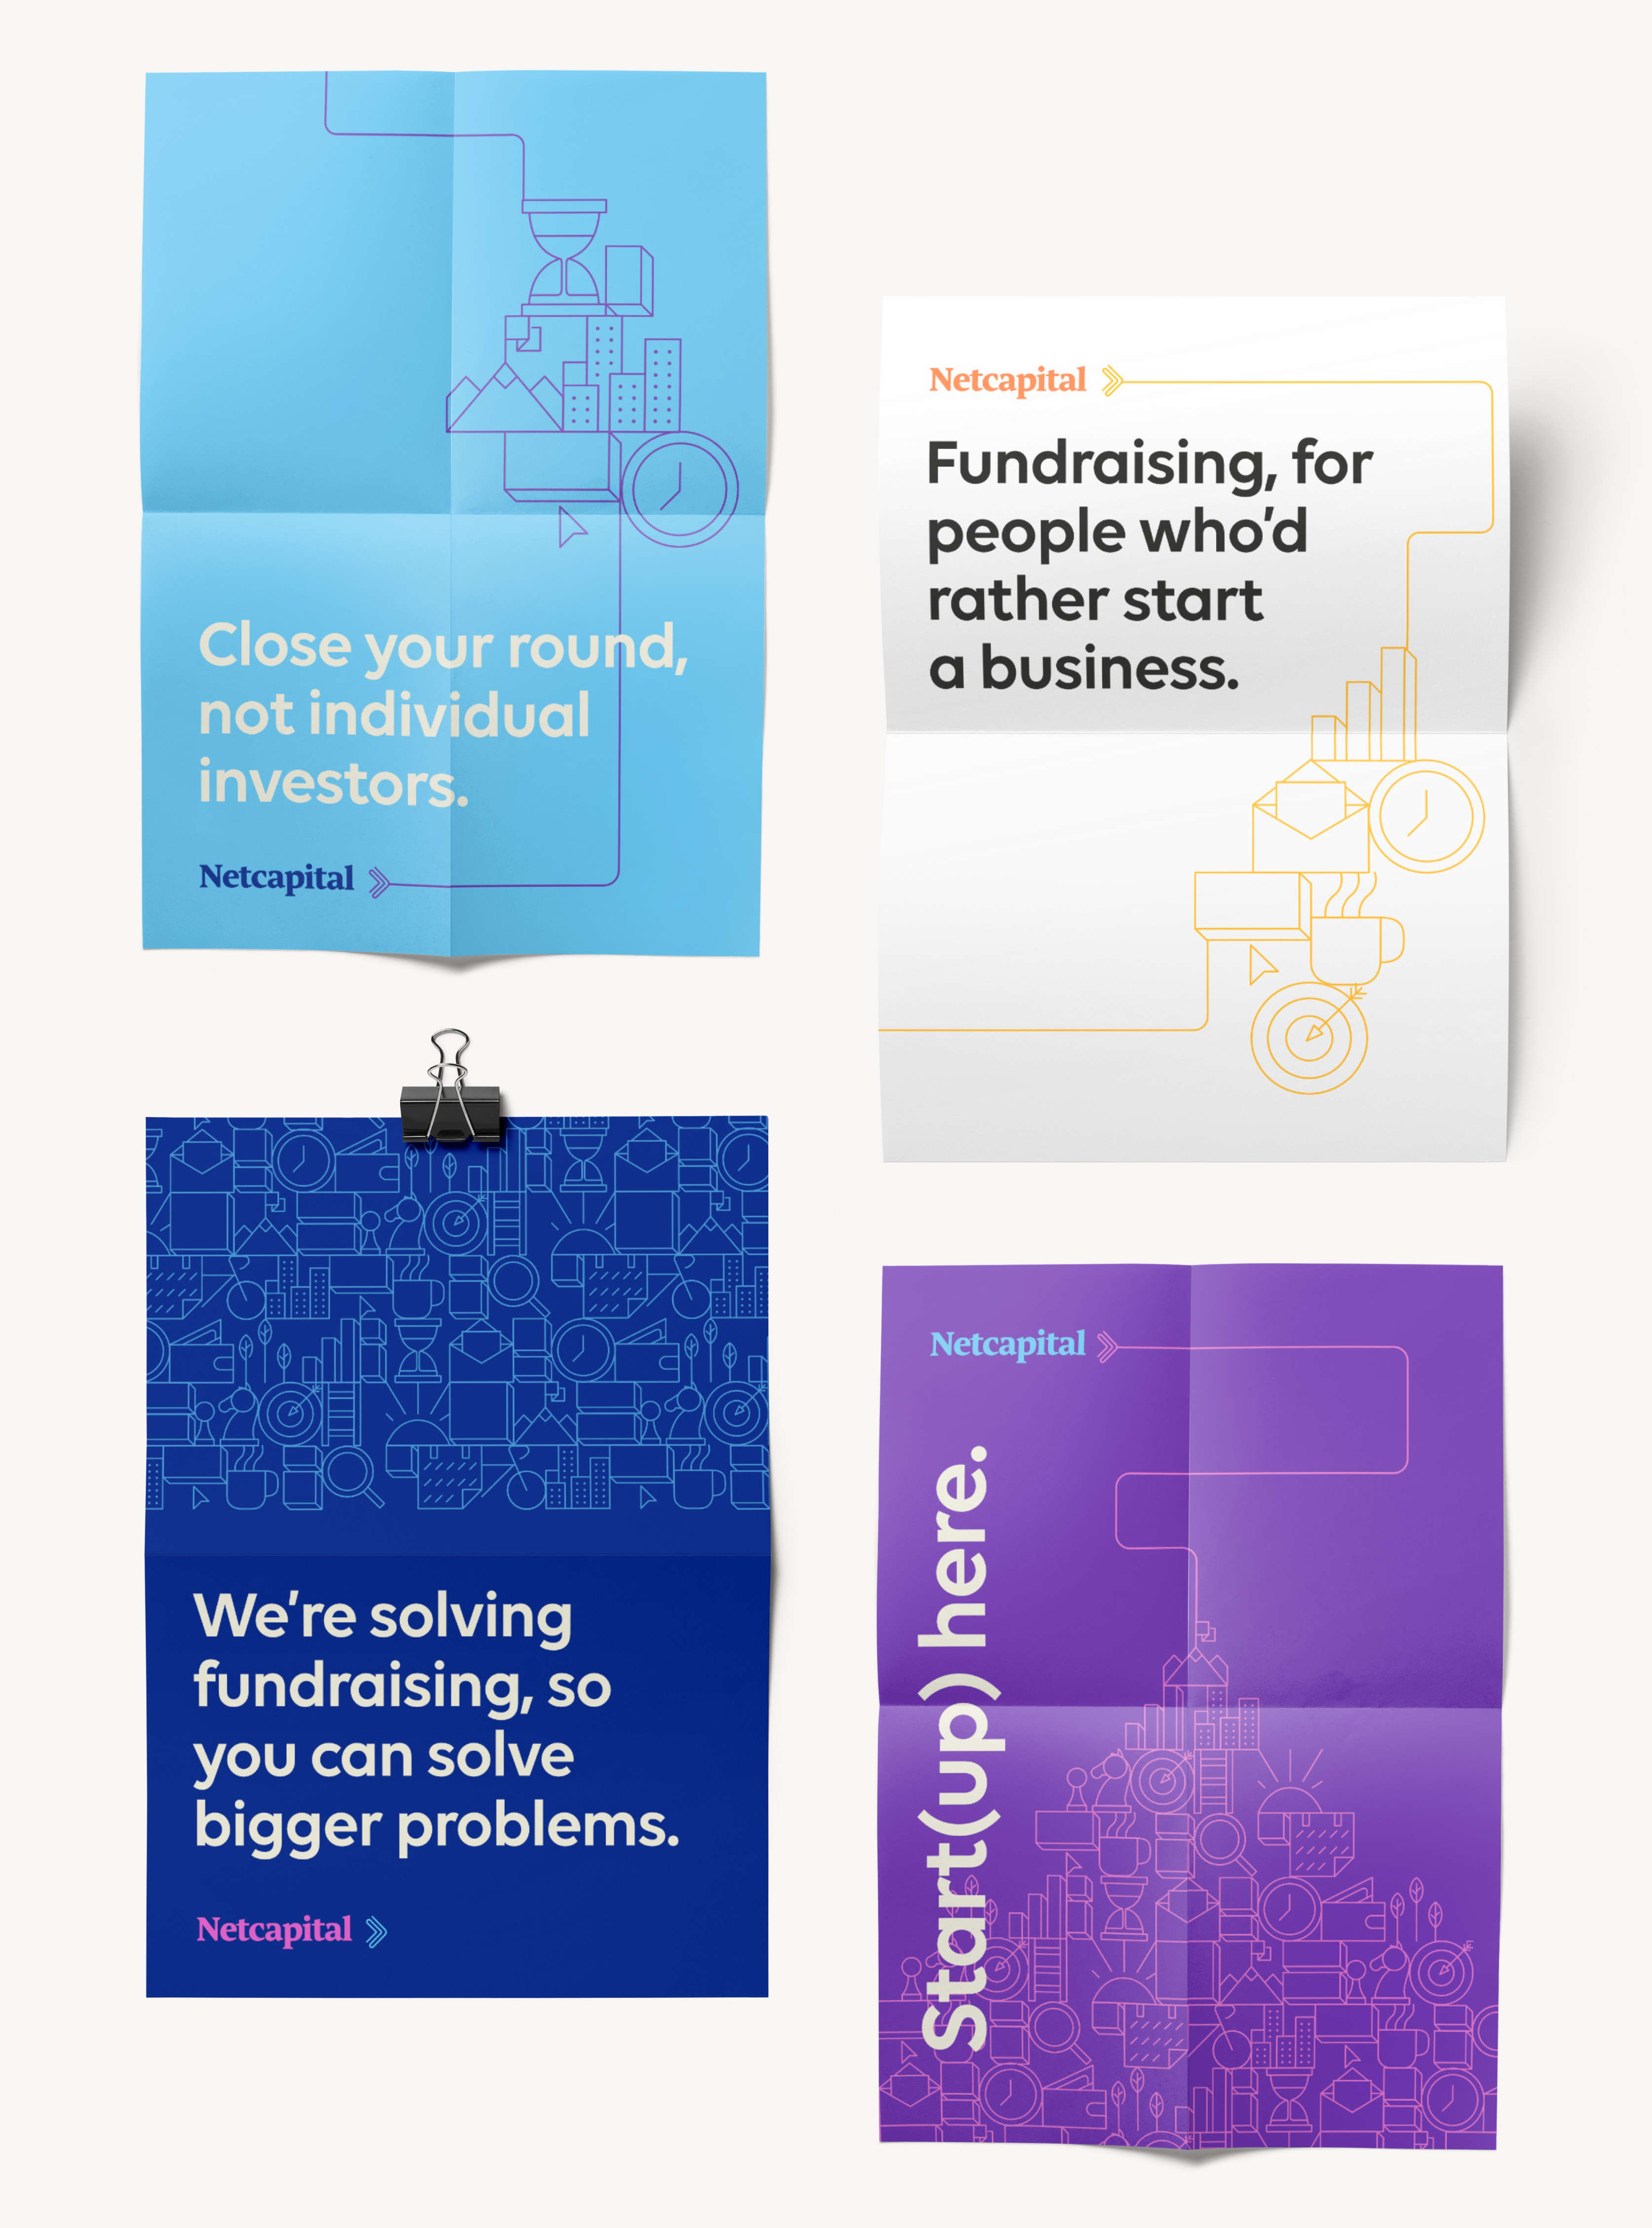 Netcapital marketing message posters